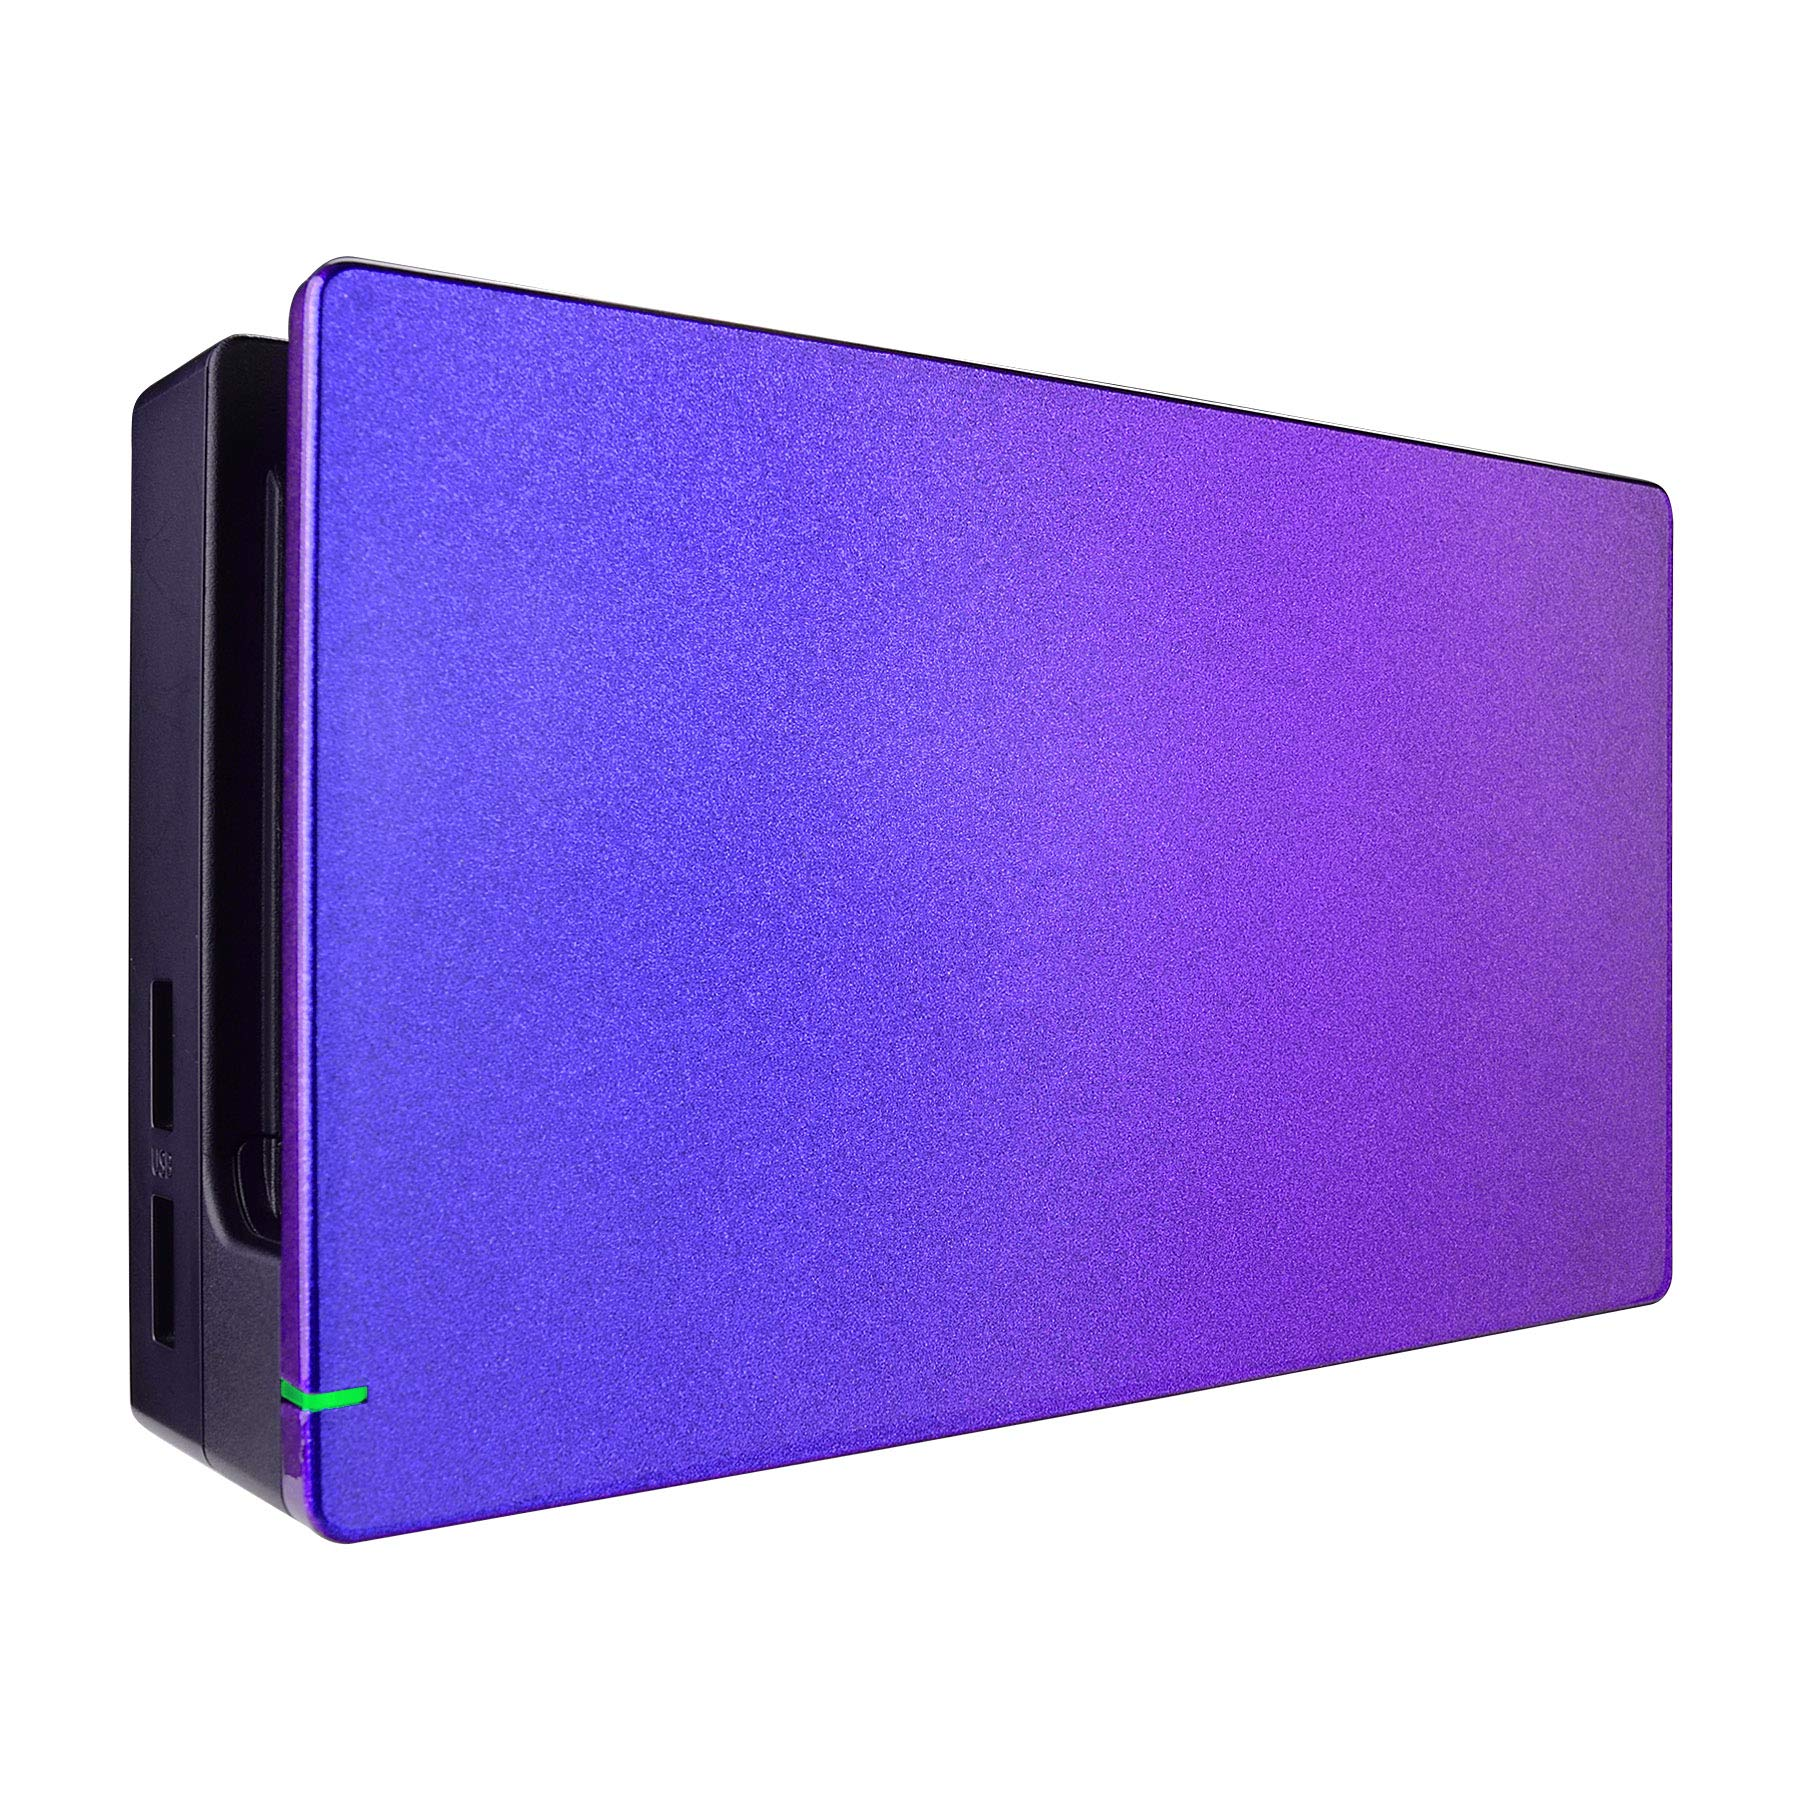 eXtremeRate Custom Chameleon Glossy Faceplate for Nintendo Switch Dock, Purple Blue DIY Replacement Housing Shell for Nintendo Switch Dock - Dock NOT Included by eXtremeRate